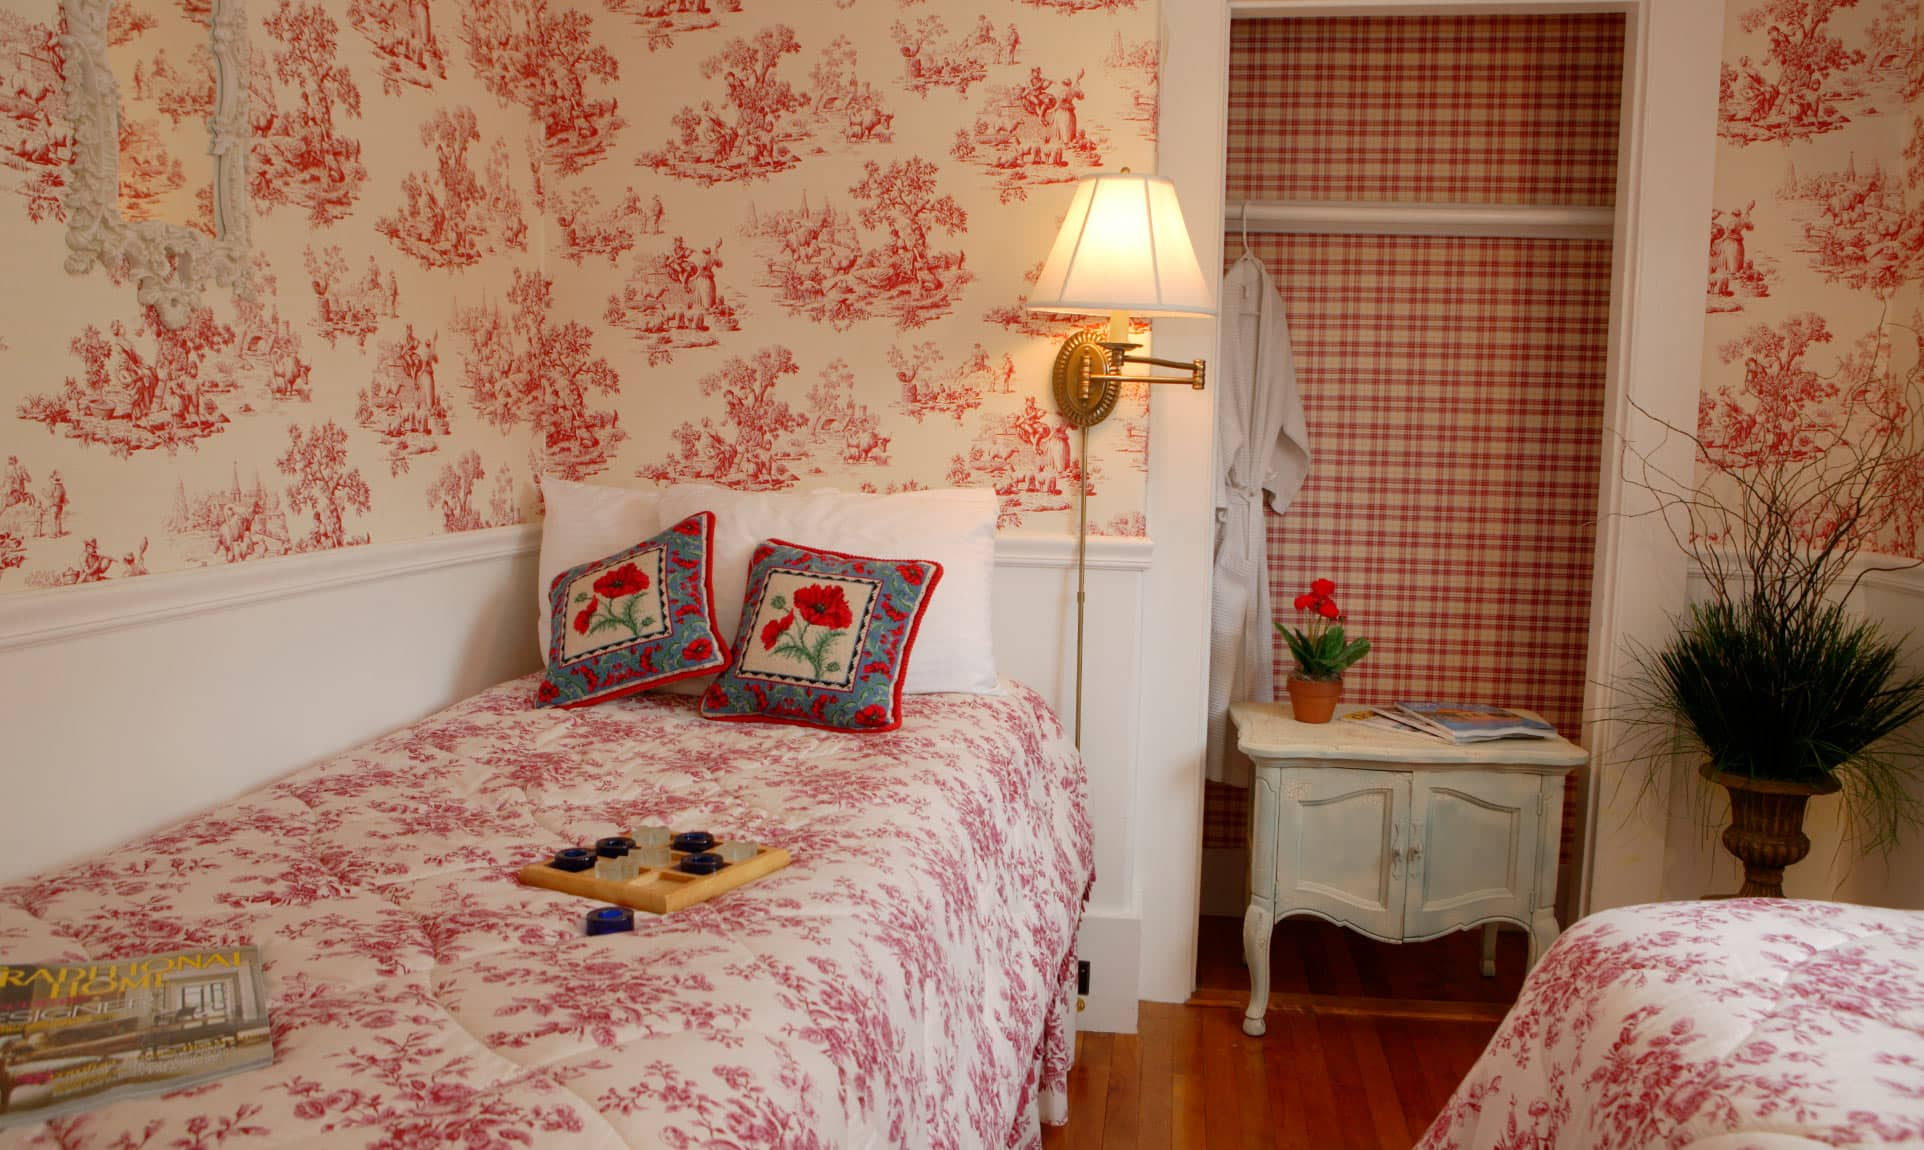 Second Bedroom with Two twin beds in shades of red